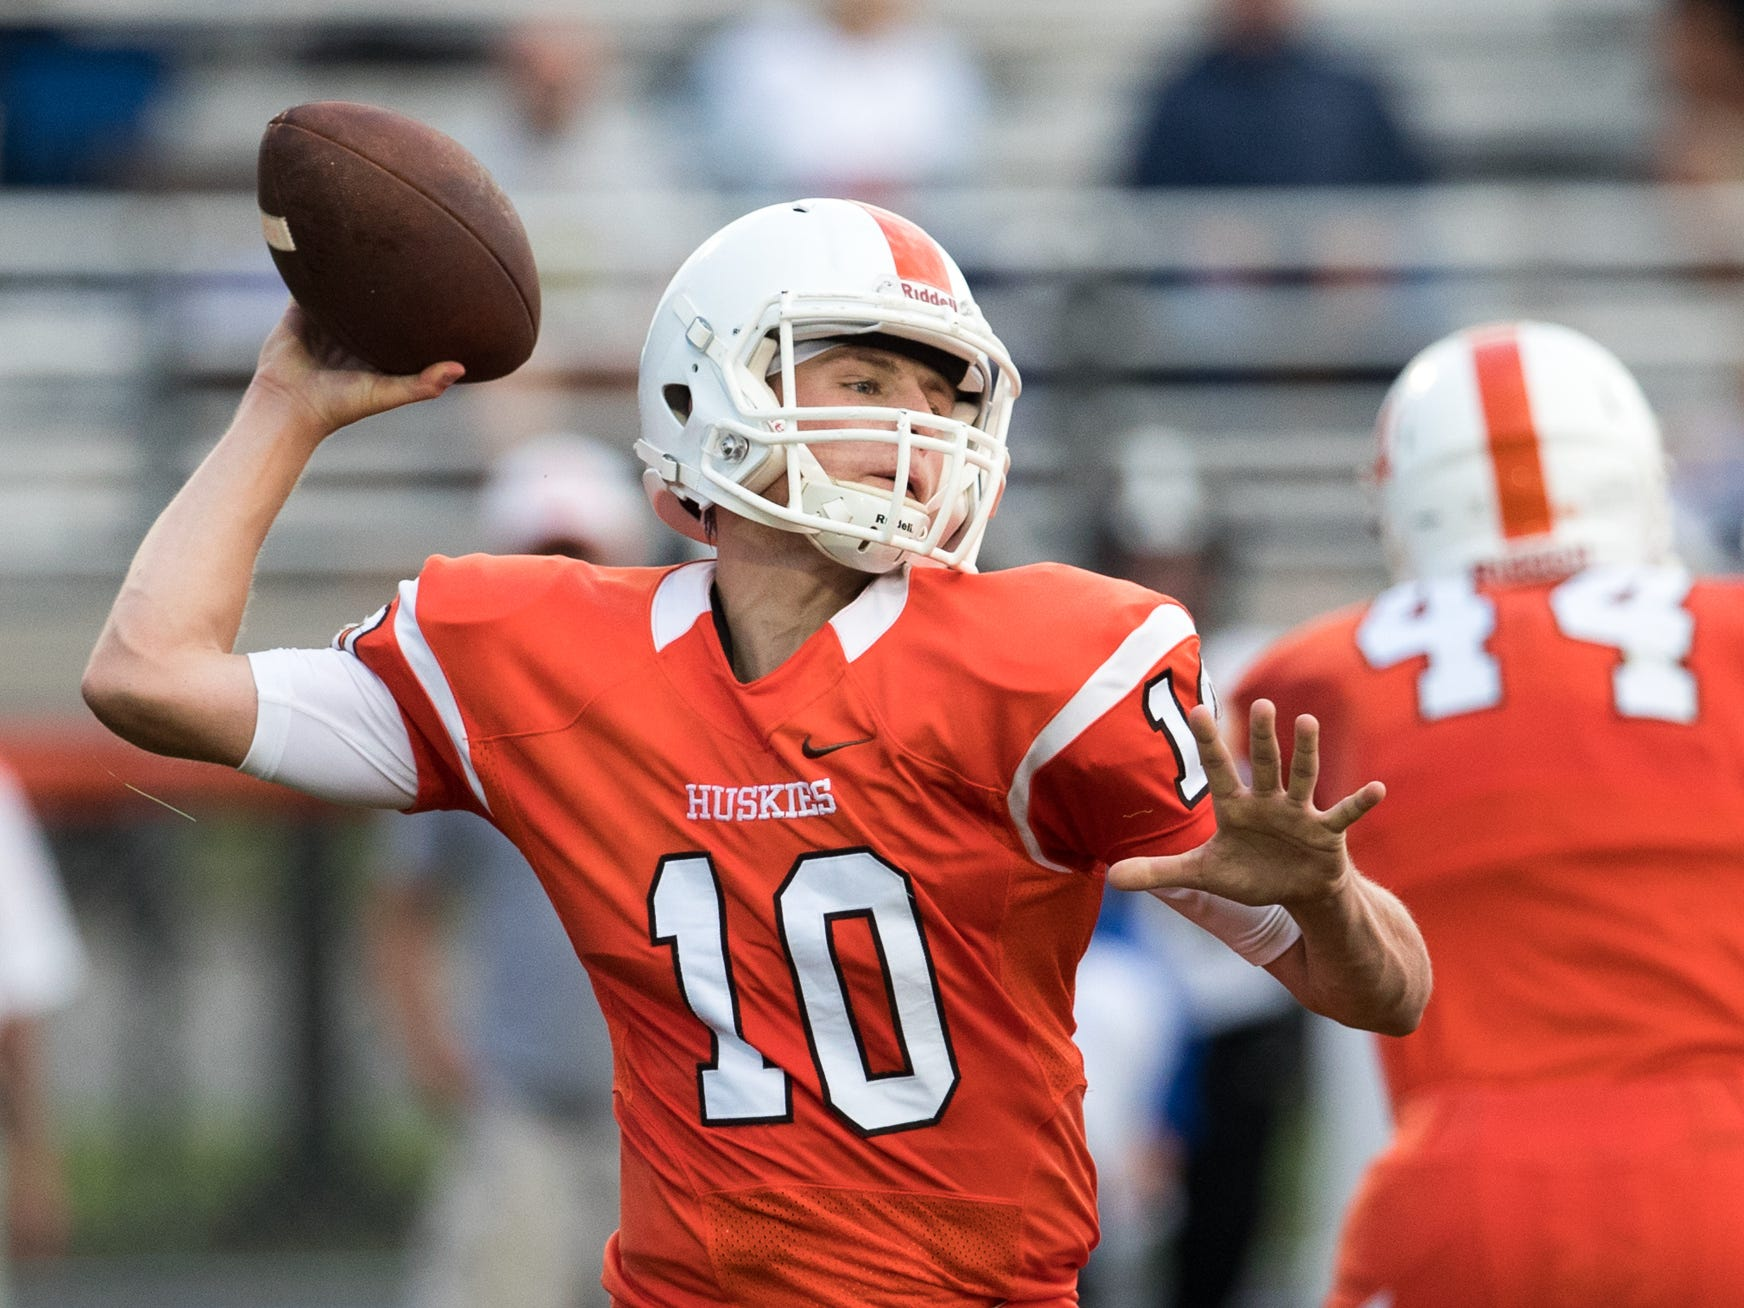 Carter Campassi, quarterback for Hamilton Heights, passes during first half action, Mount Vernon High School at Hamilton Heights High School football, won by MVHS, 43-14, Arcadia, Friday, Aug. 17, 2018. This game is the first for HHHS head coach Jon Kirschner, who faced his father Mike Kirschner, a veteran and champion coach in his first season at MVHS.